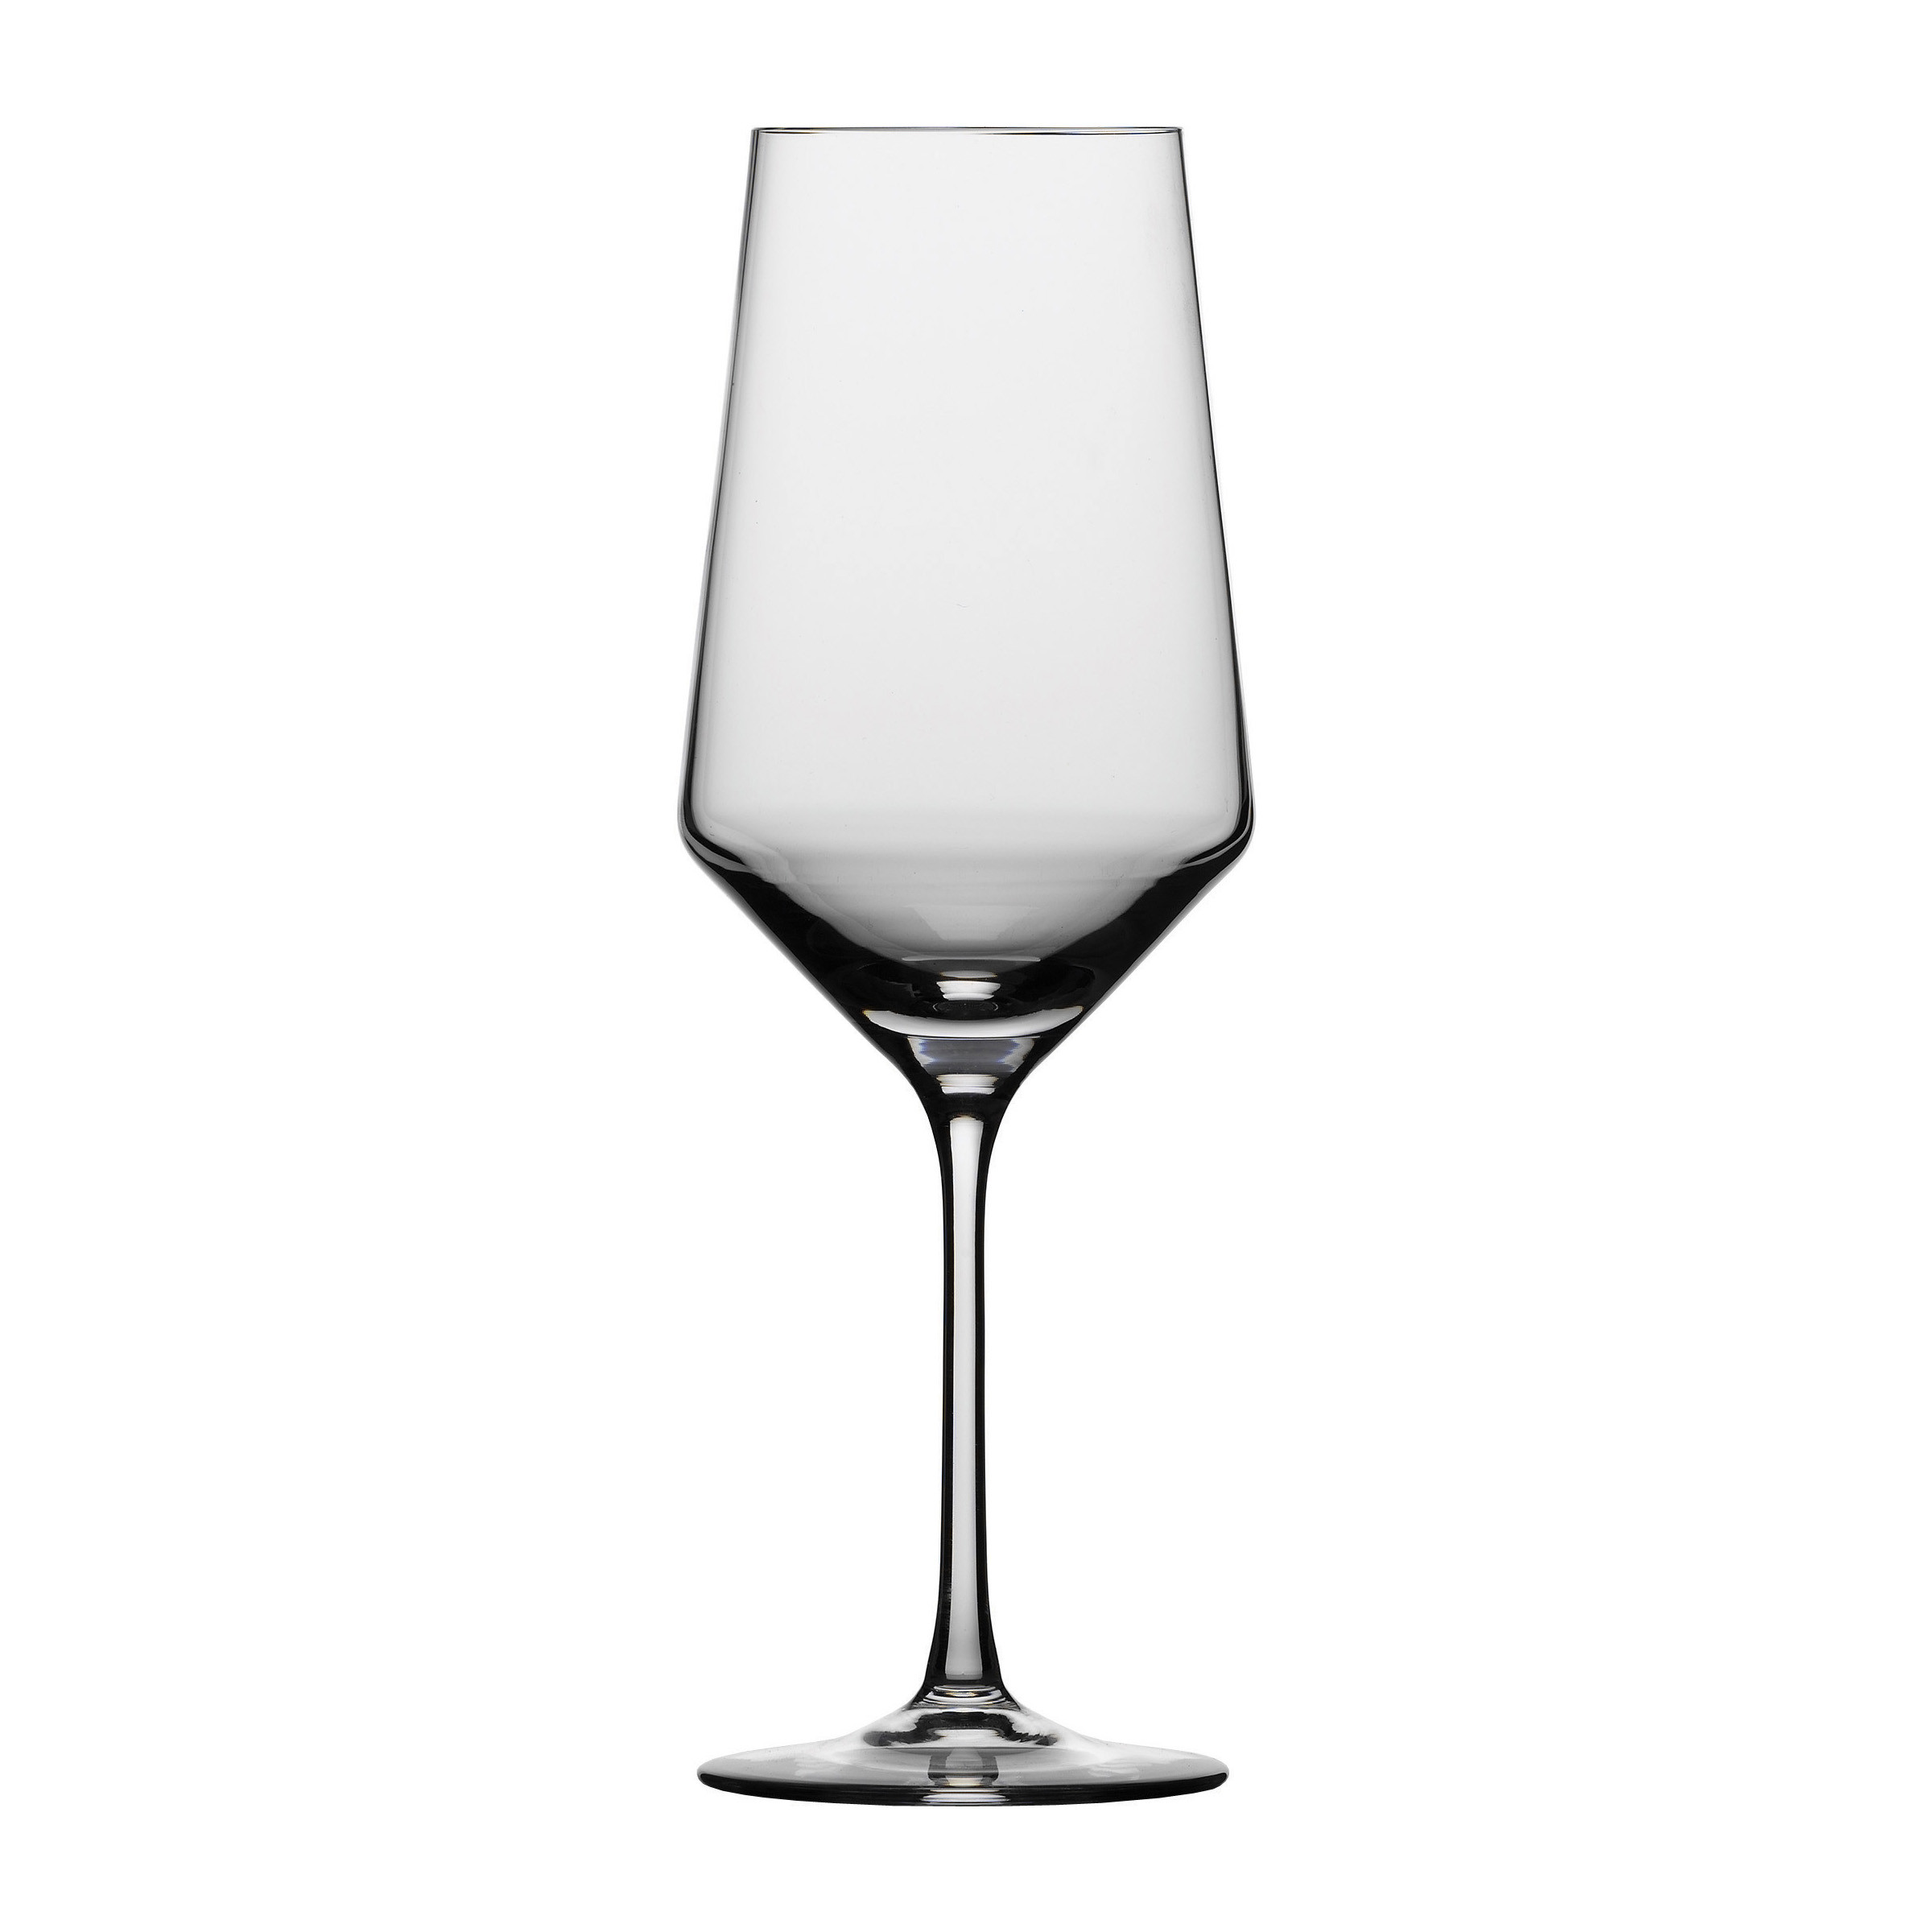 Titanium Wine Glass | Schott Zwiesel White Wine Glasses | Schott Zwiesel Wine Glasses